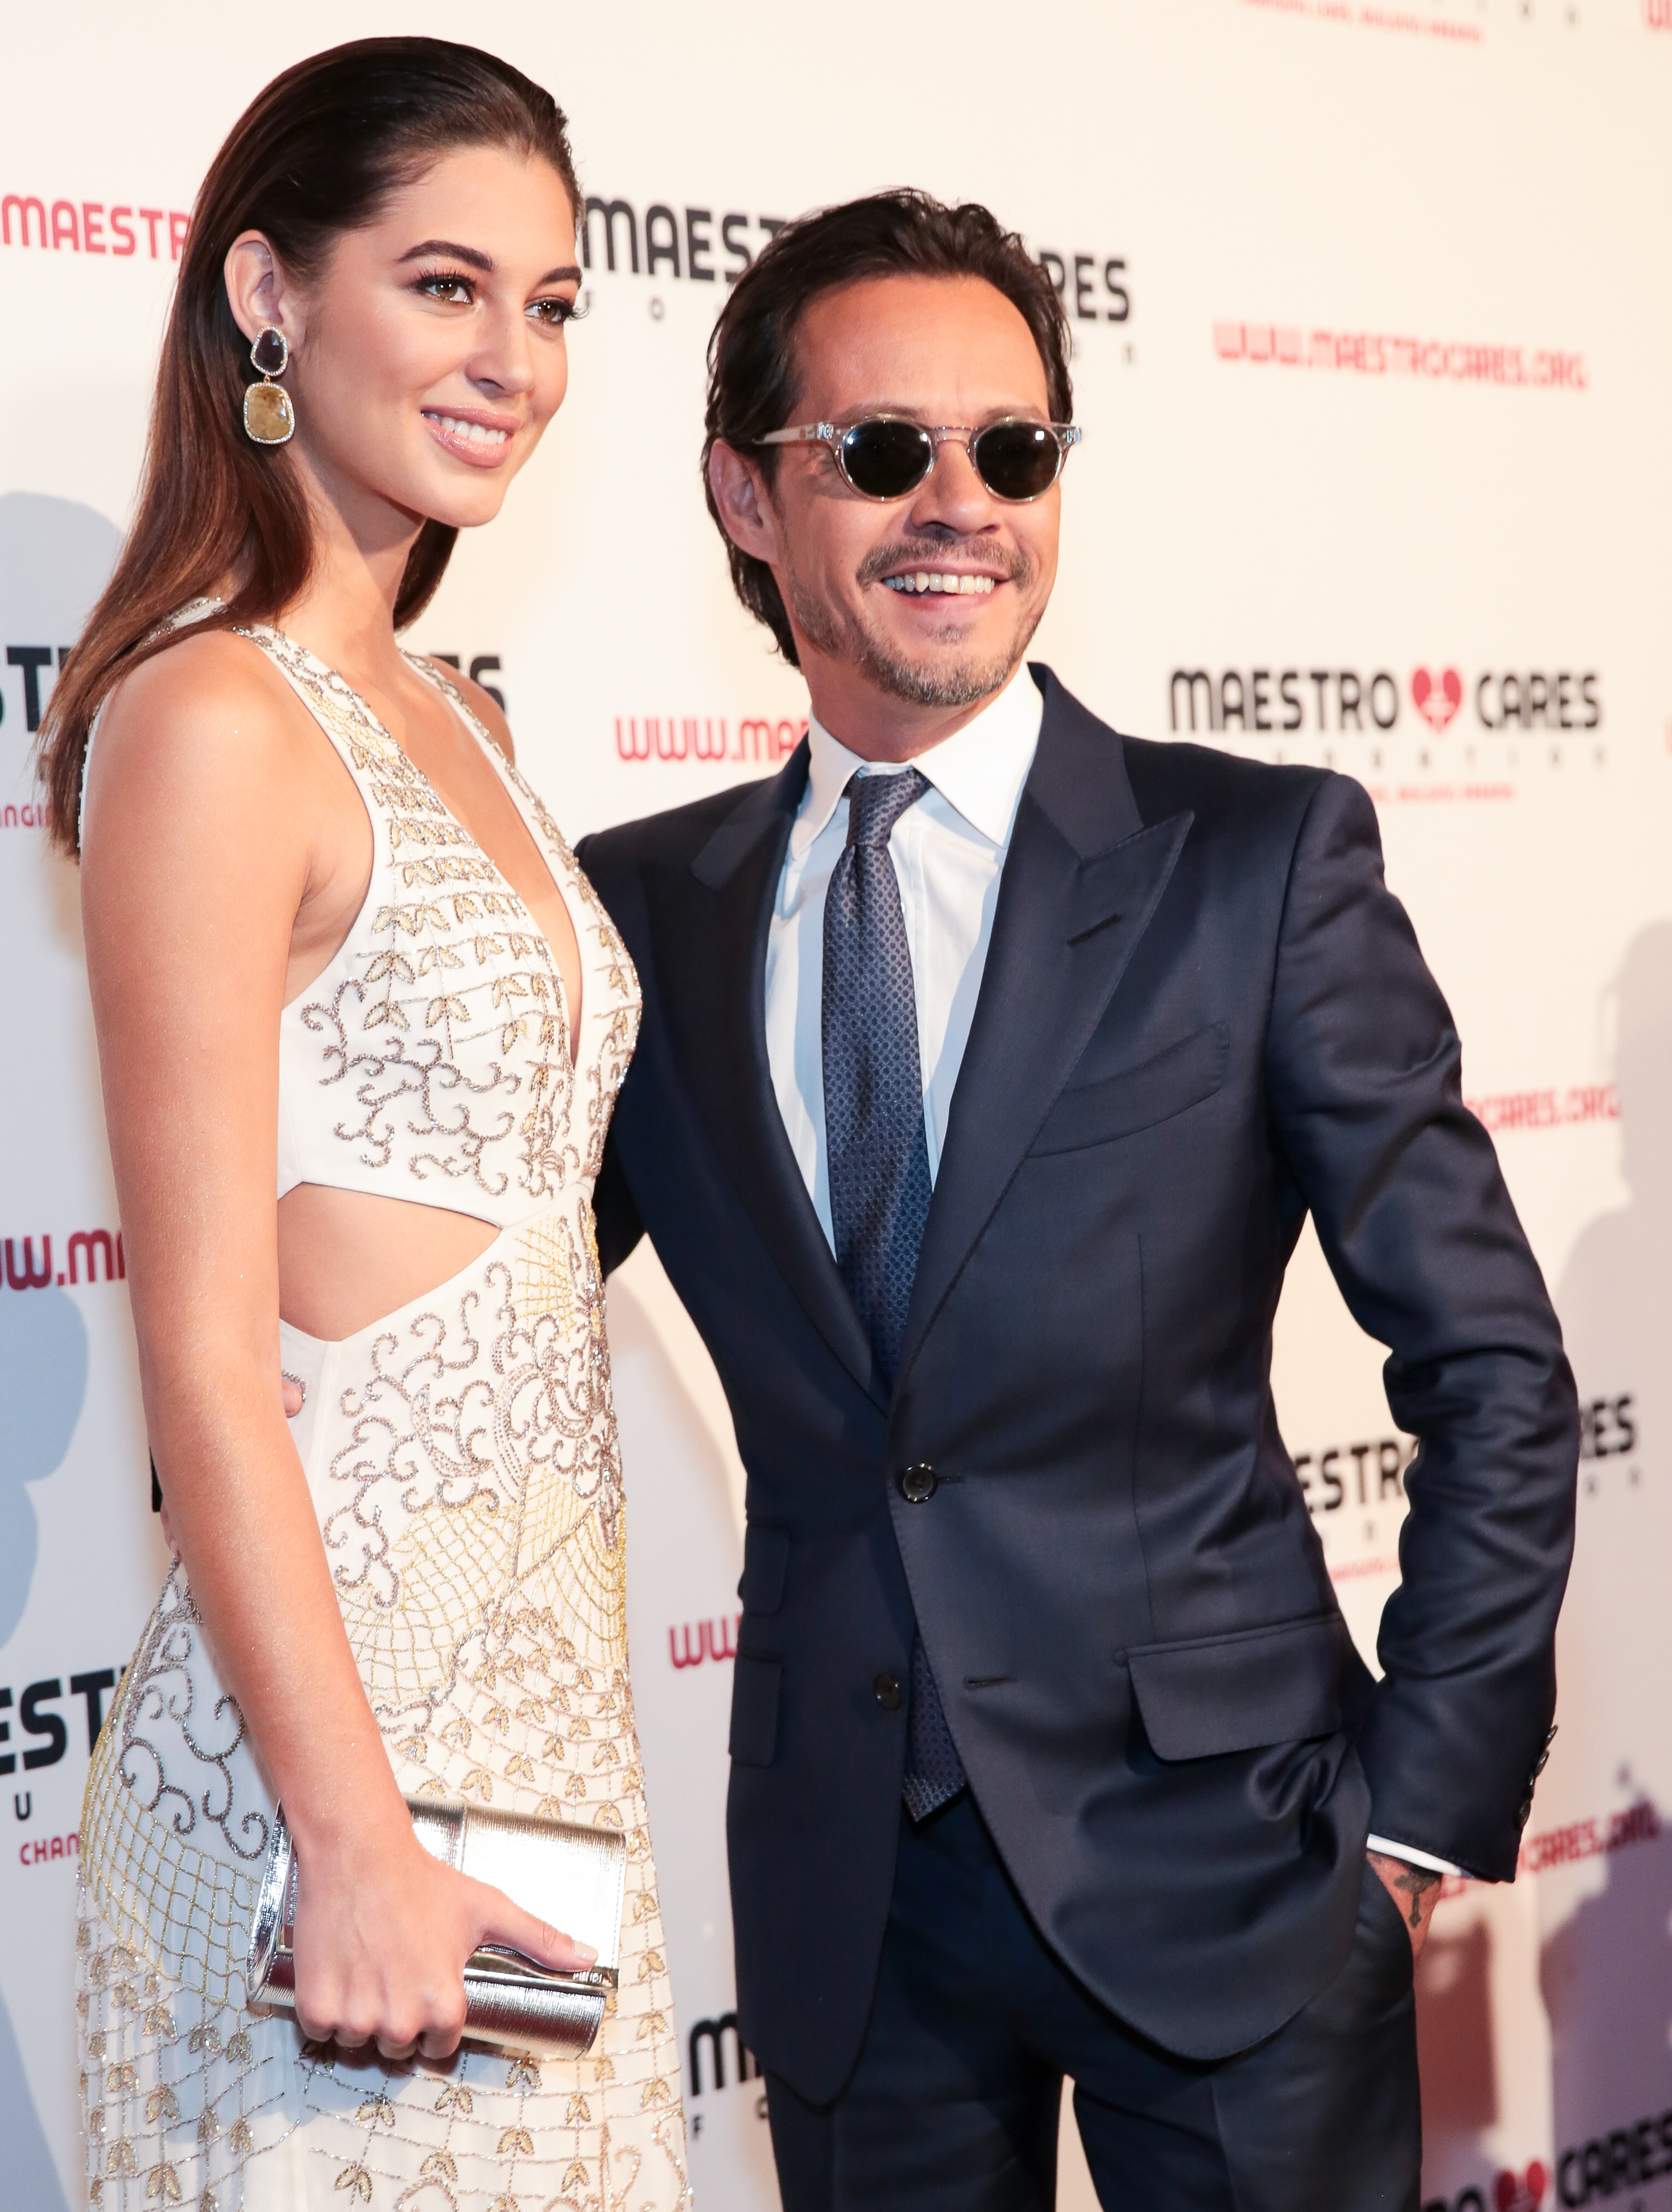 Mariana Downing y Marc Anthony, parejas